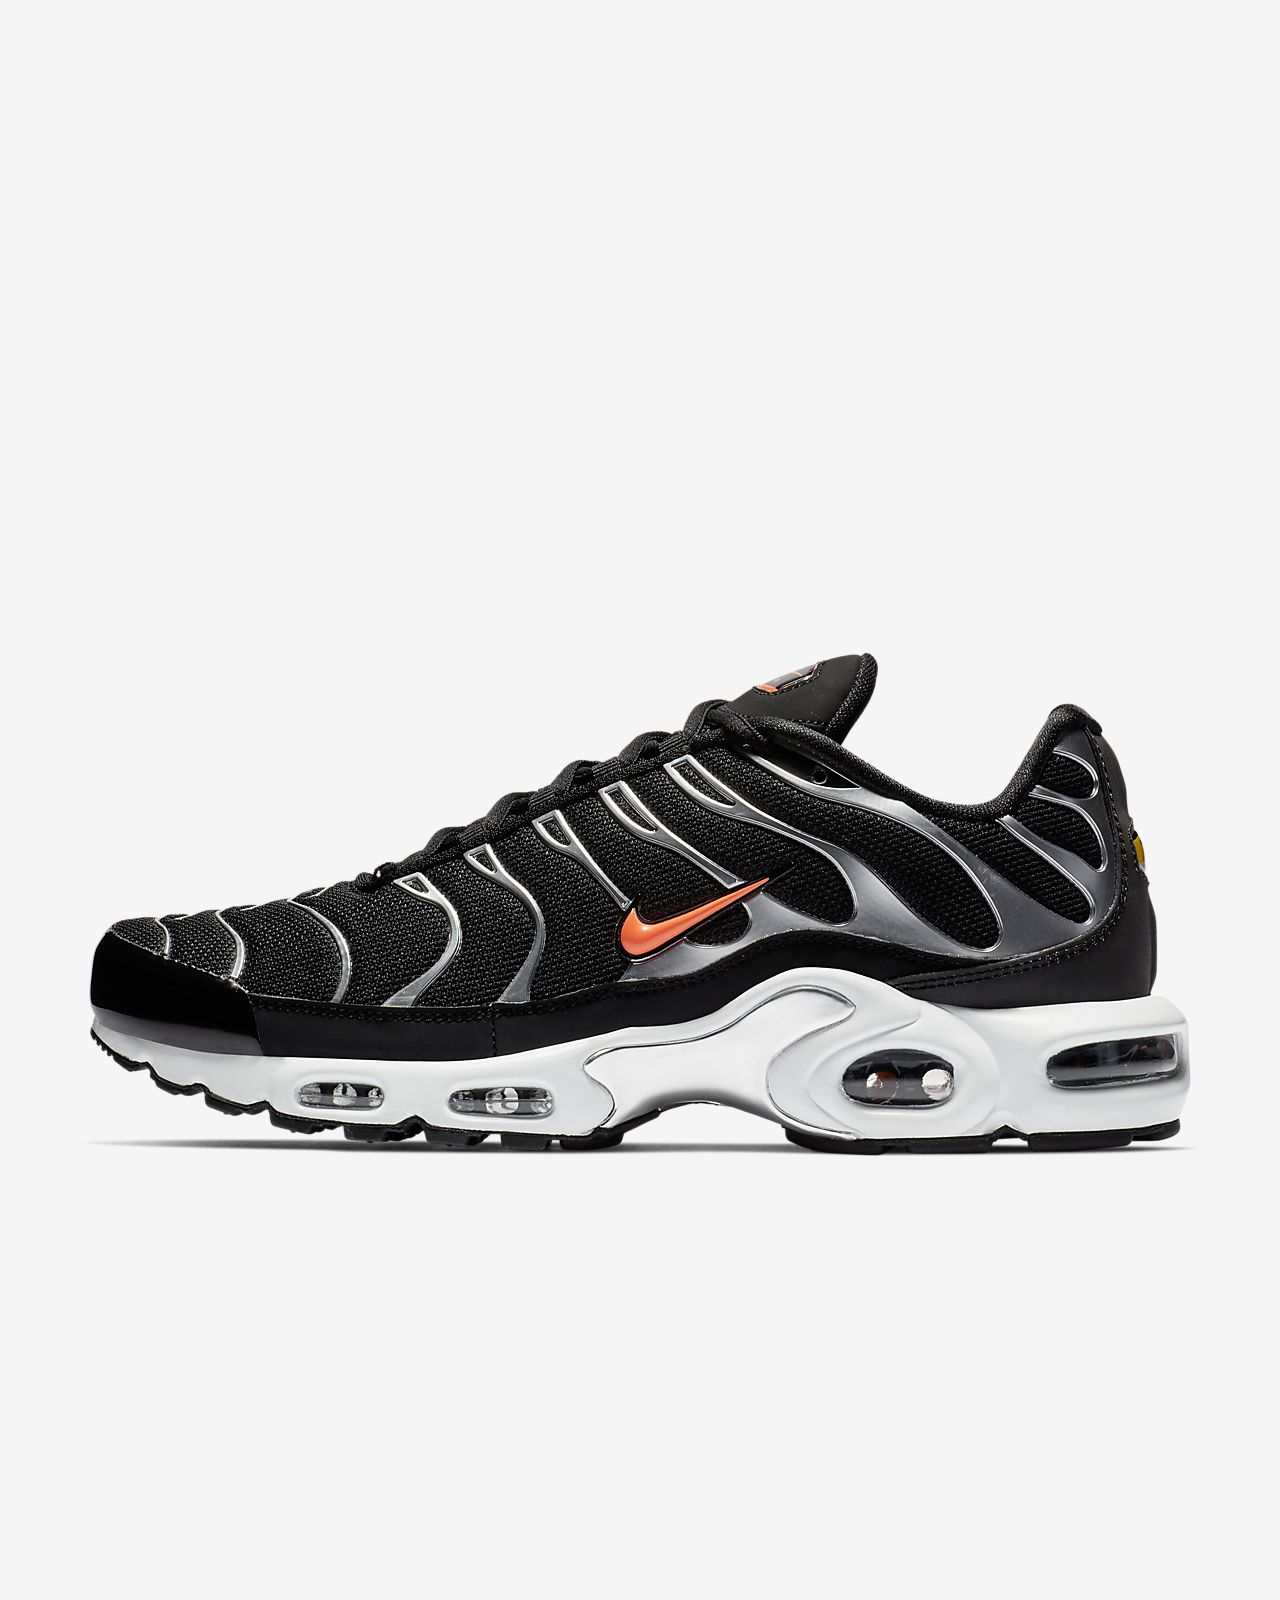 buy online e15f5 456bf ... Nike Air Max Plus TN SE-sko til mænd